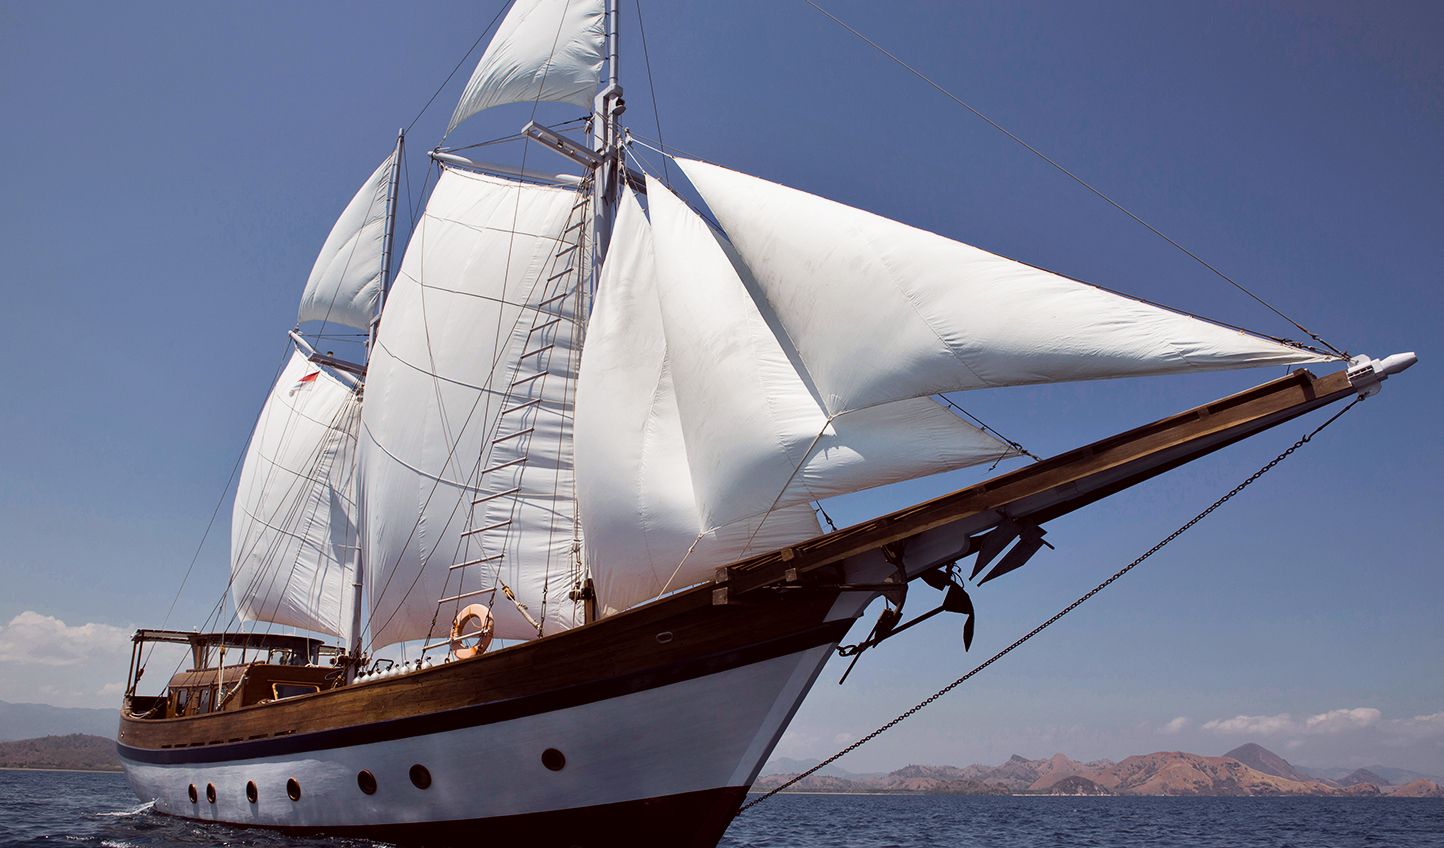 The Mantra features a low superstructure with a large deck from bow to stern.